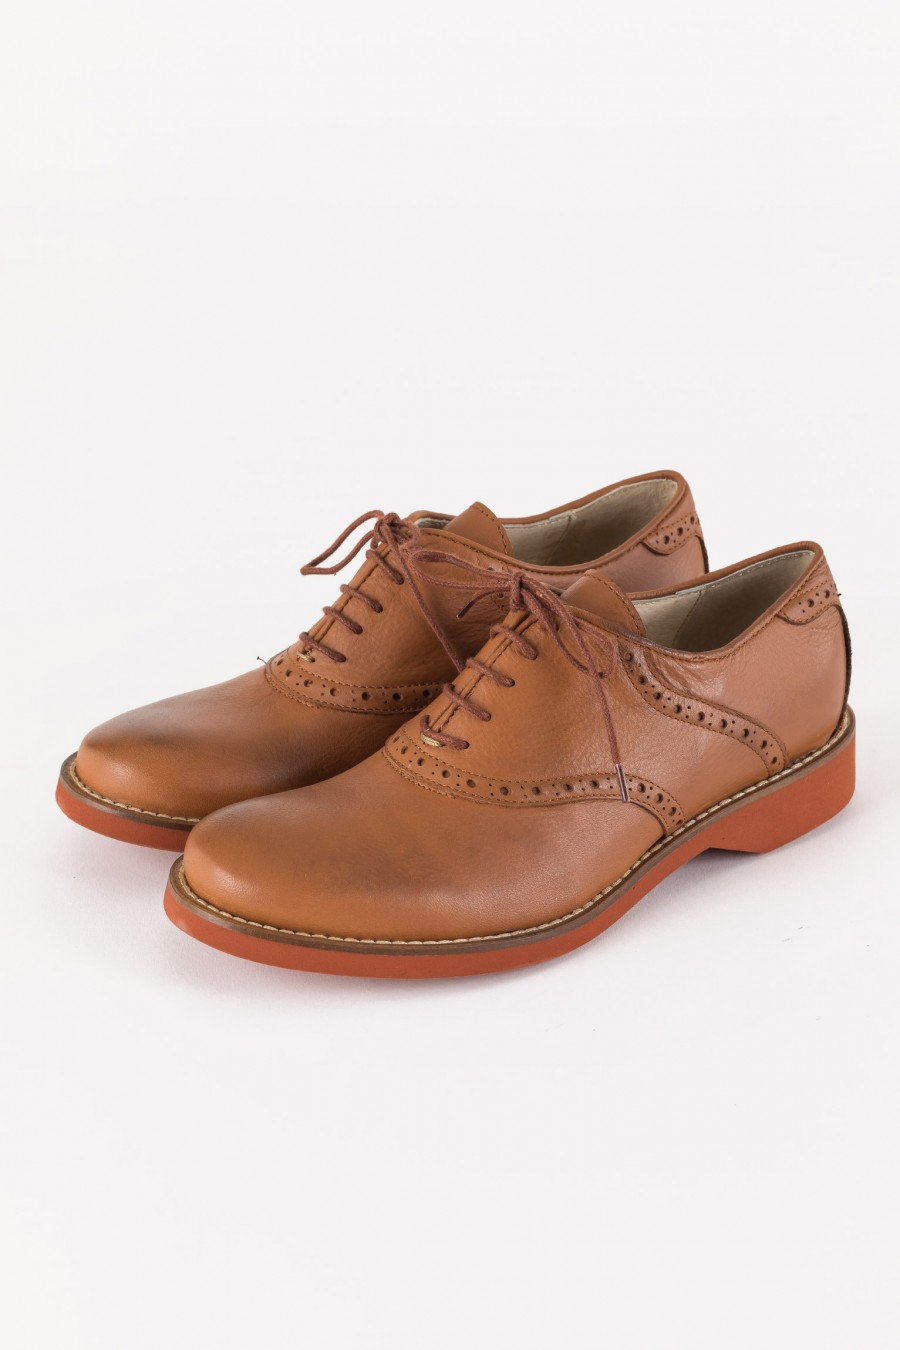 Derby shoes leather